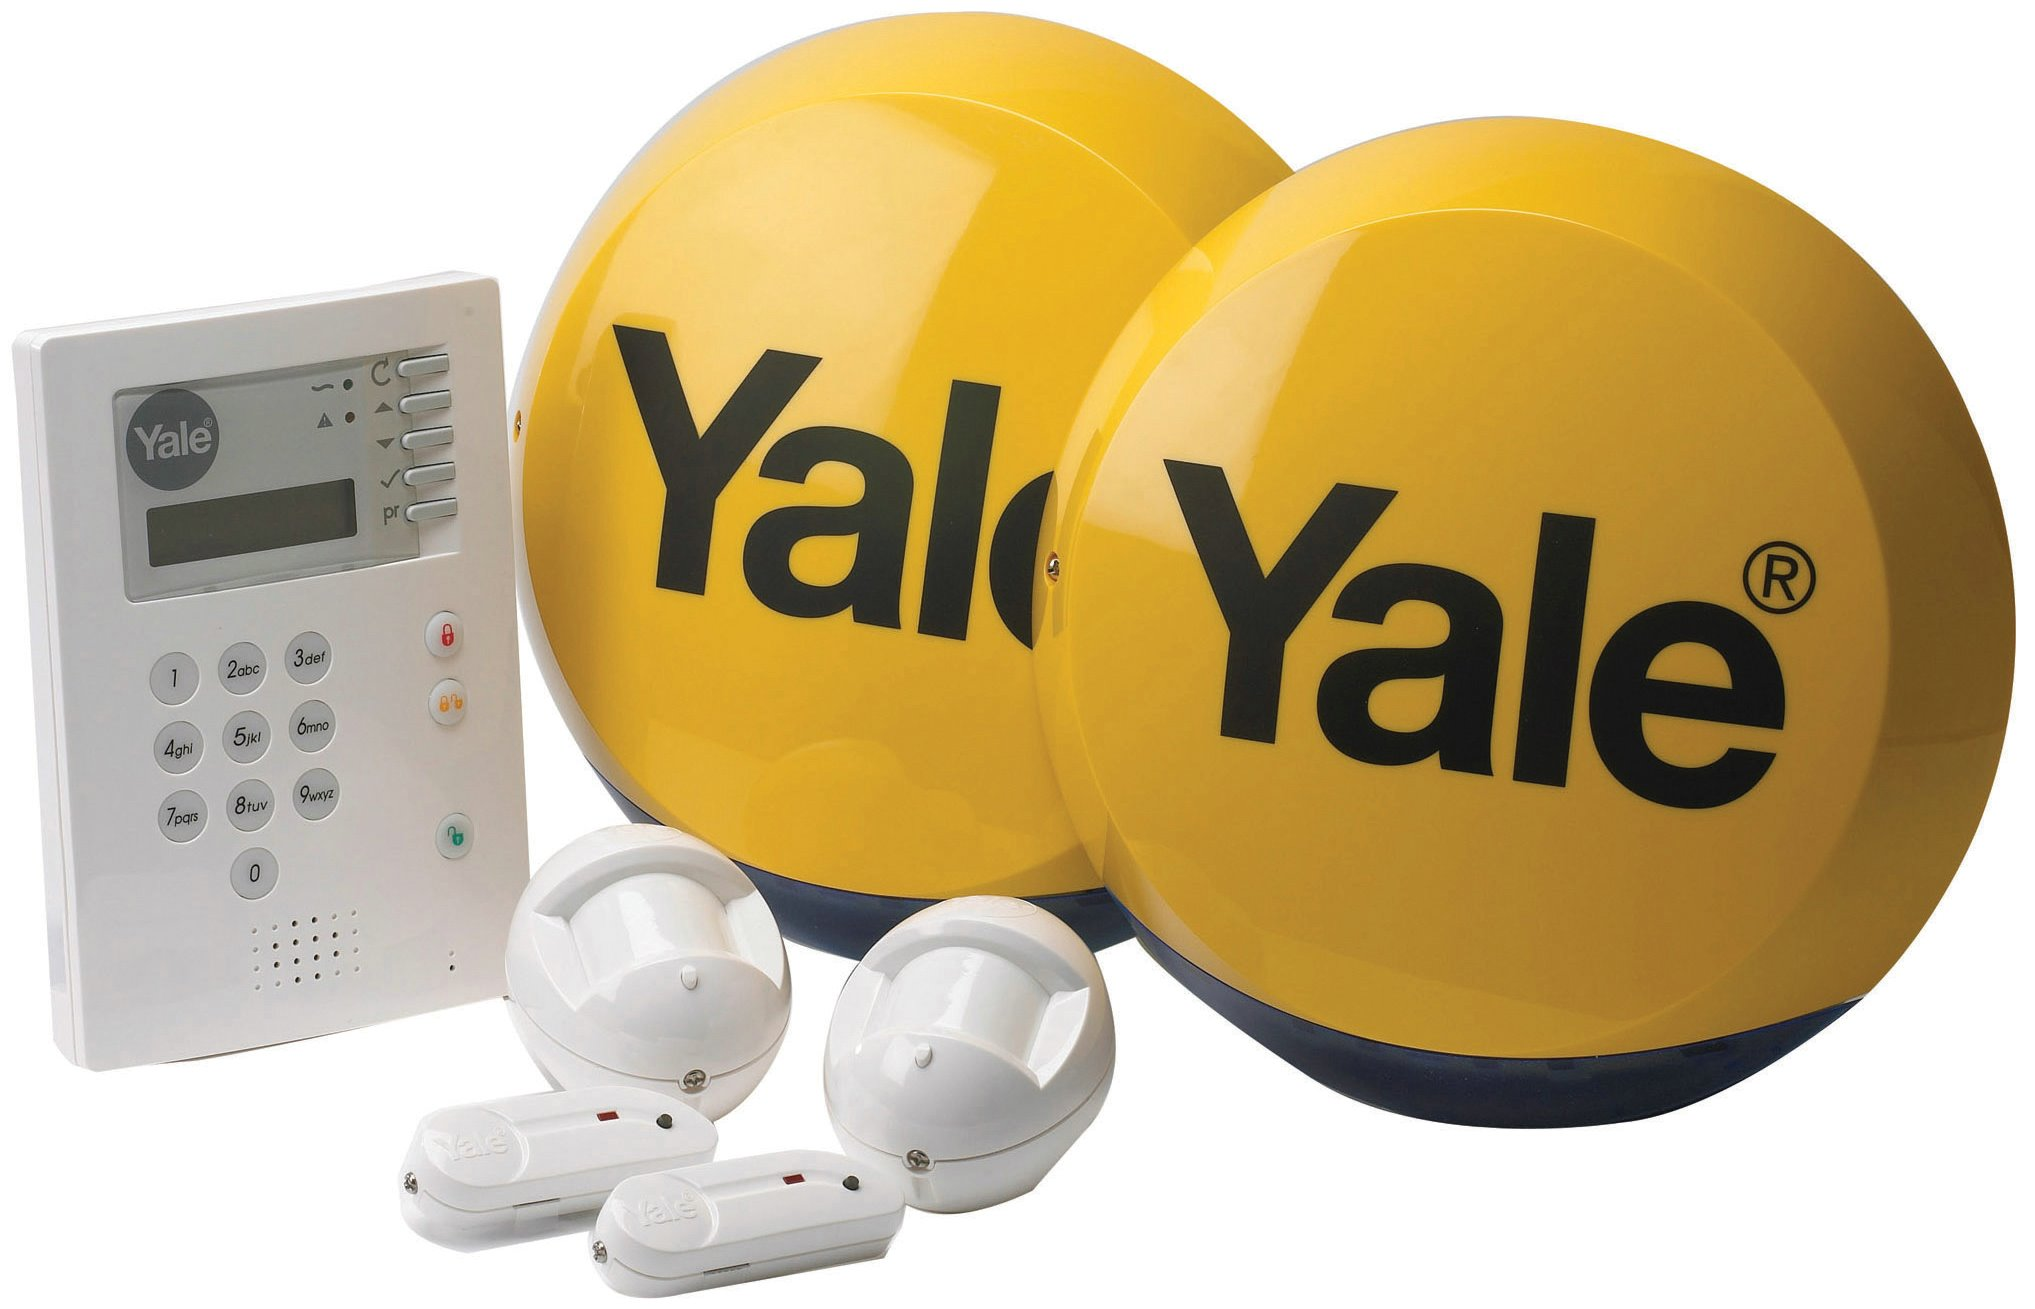 B-HSA6300 - Yale Family Series Home Security Alarm System